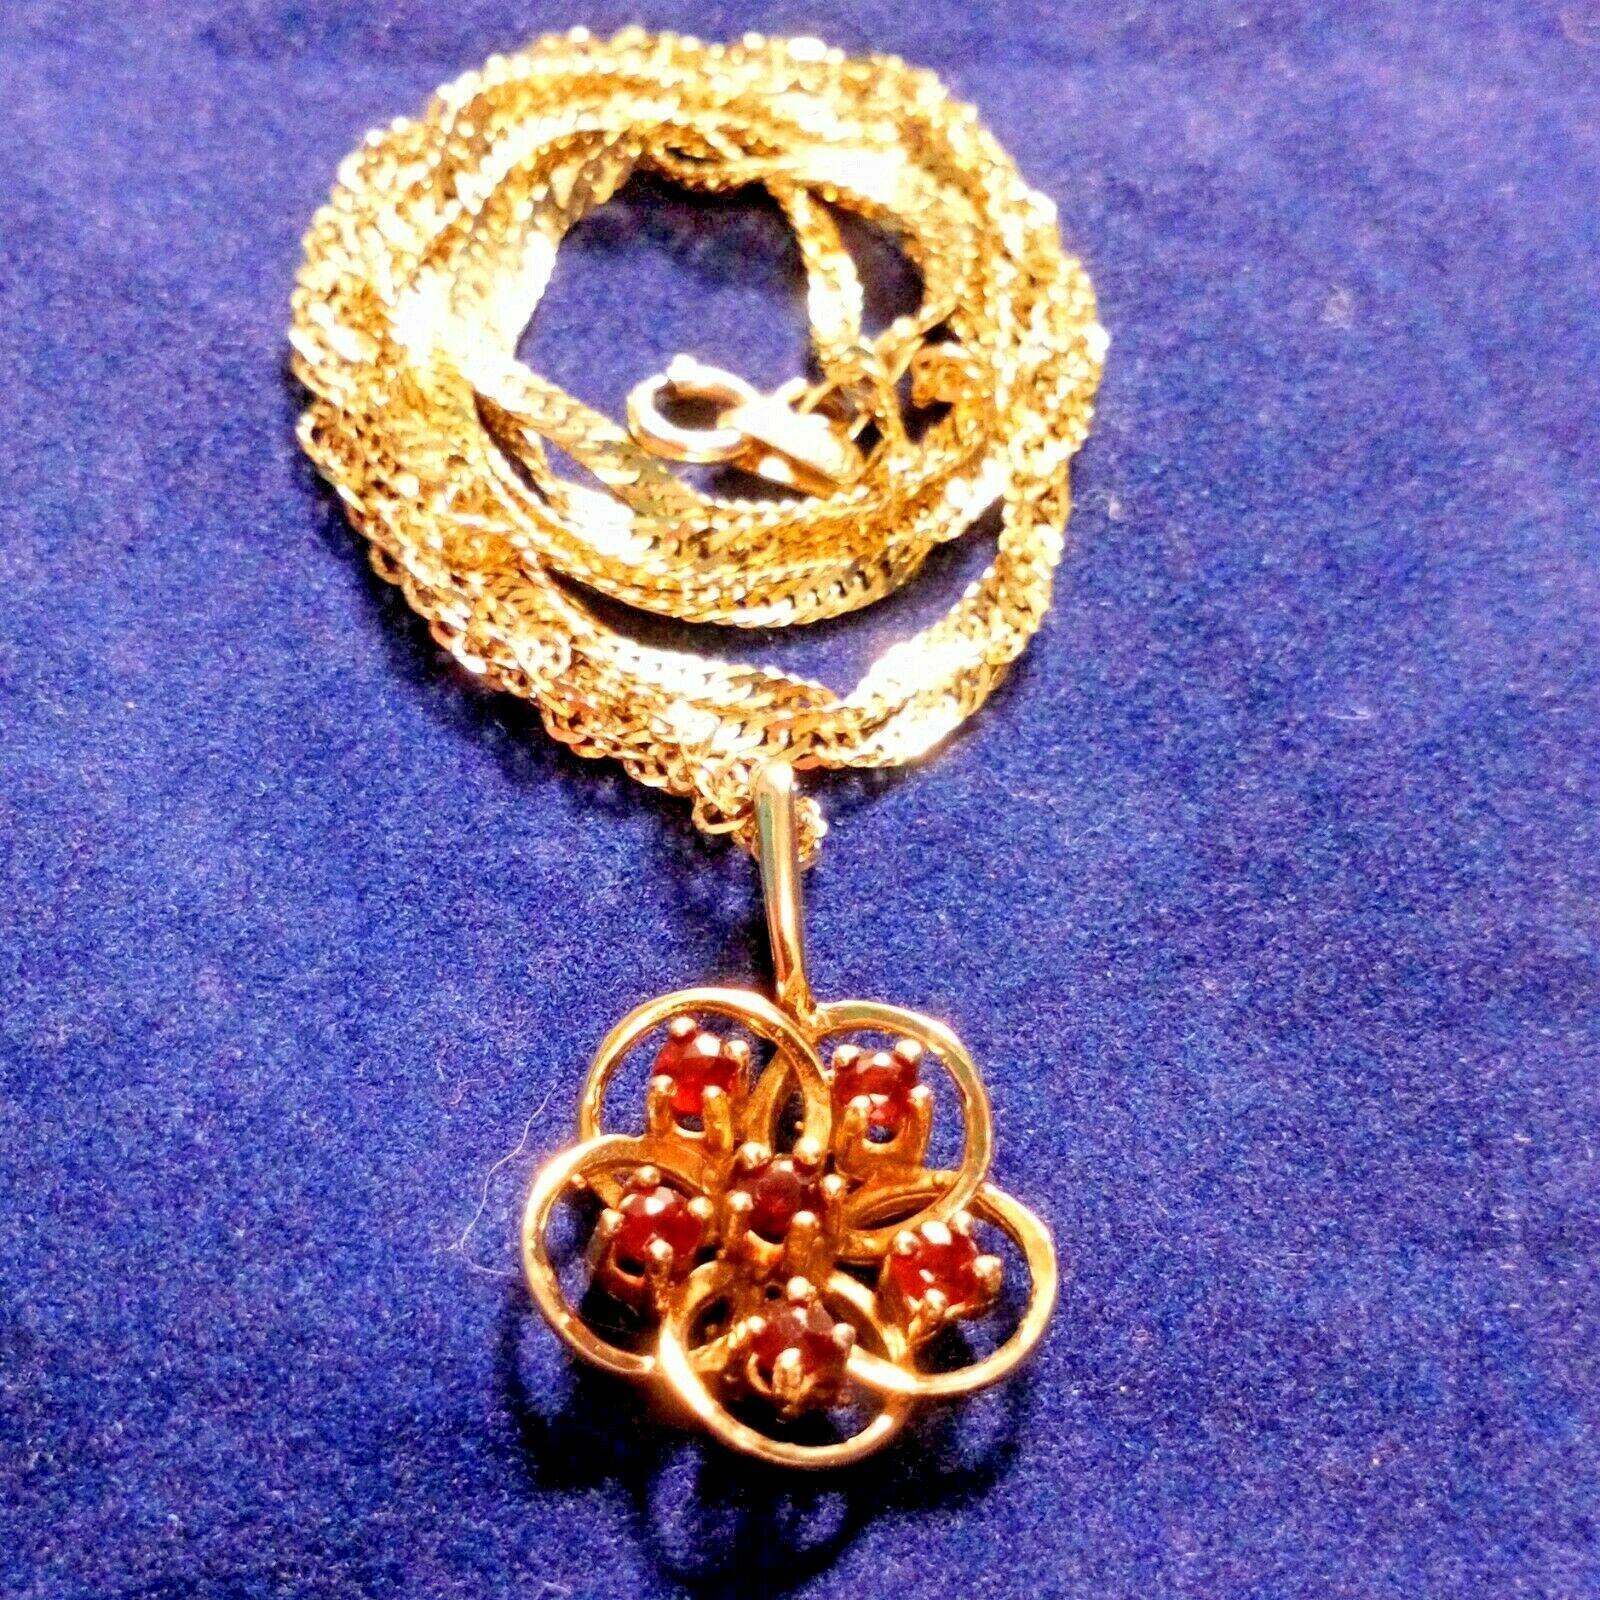 9ct Gold and Garnet Flower Shape Pendant with 24 in 9ct Gold Chain 3.5g HM 1979